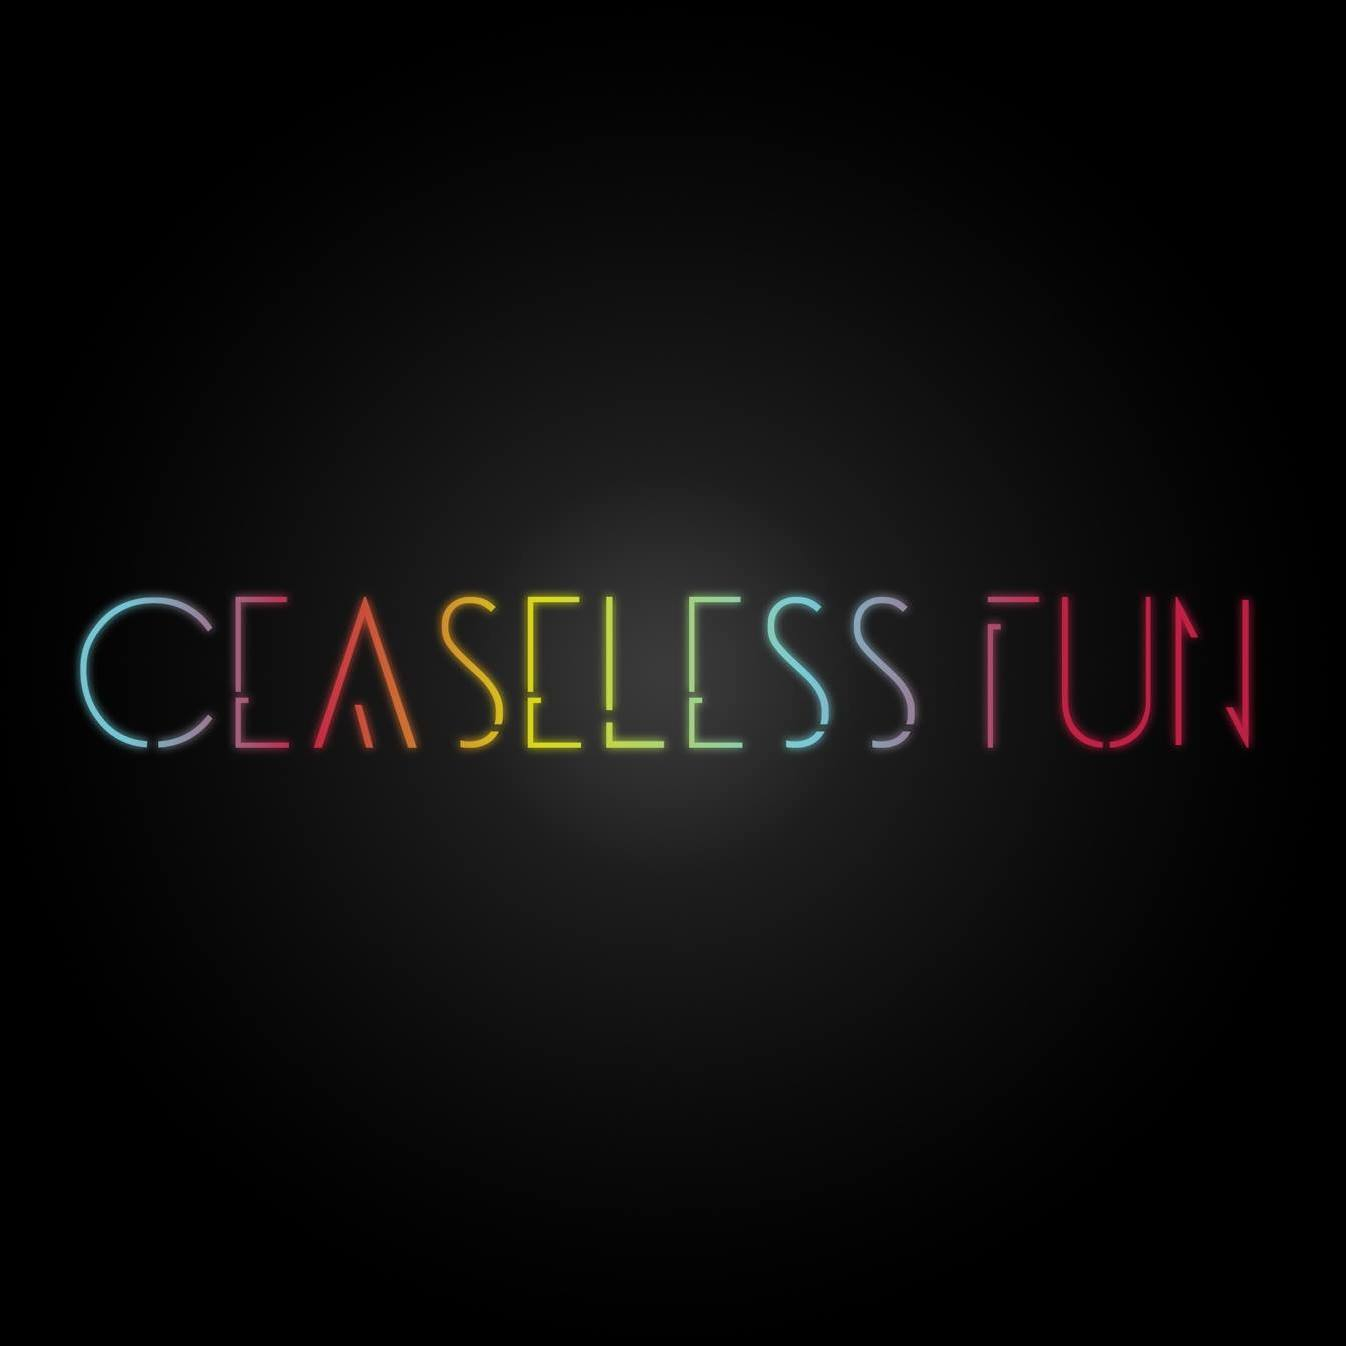 Ceaseless fun - Derek Spencer - Radical Immersive Theater